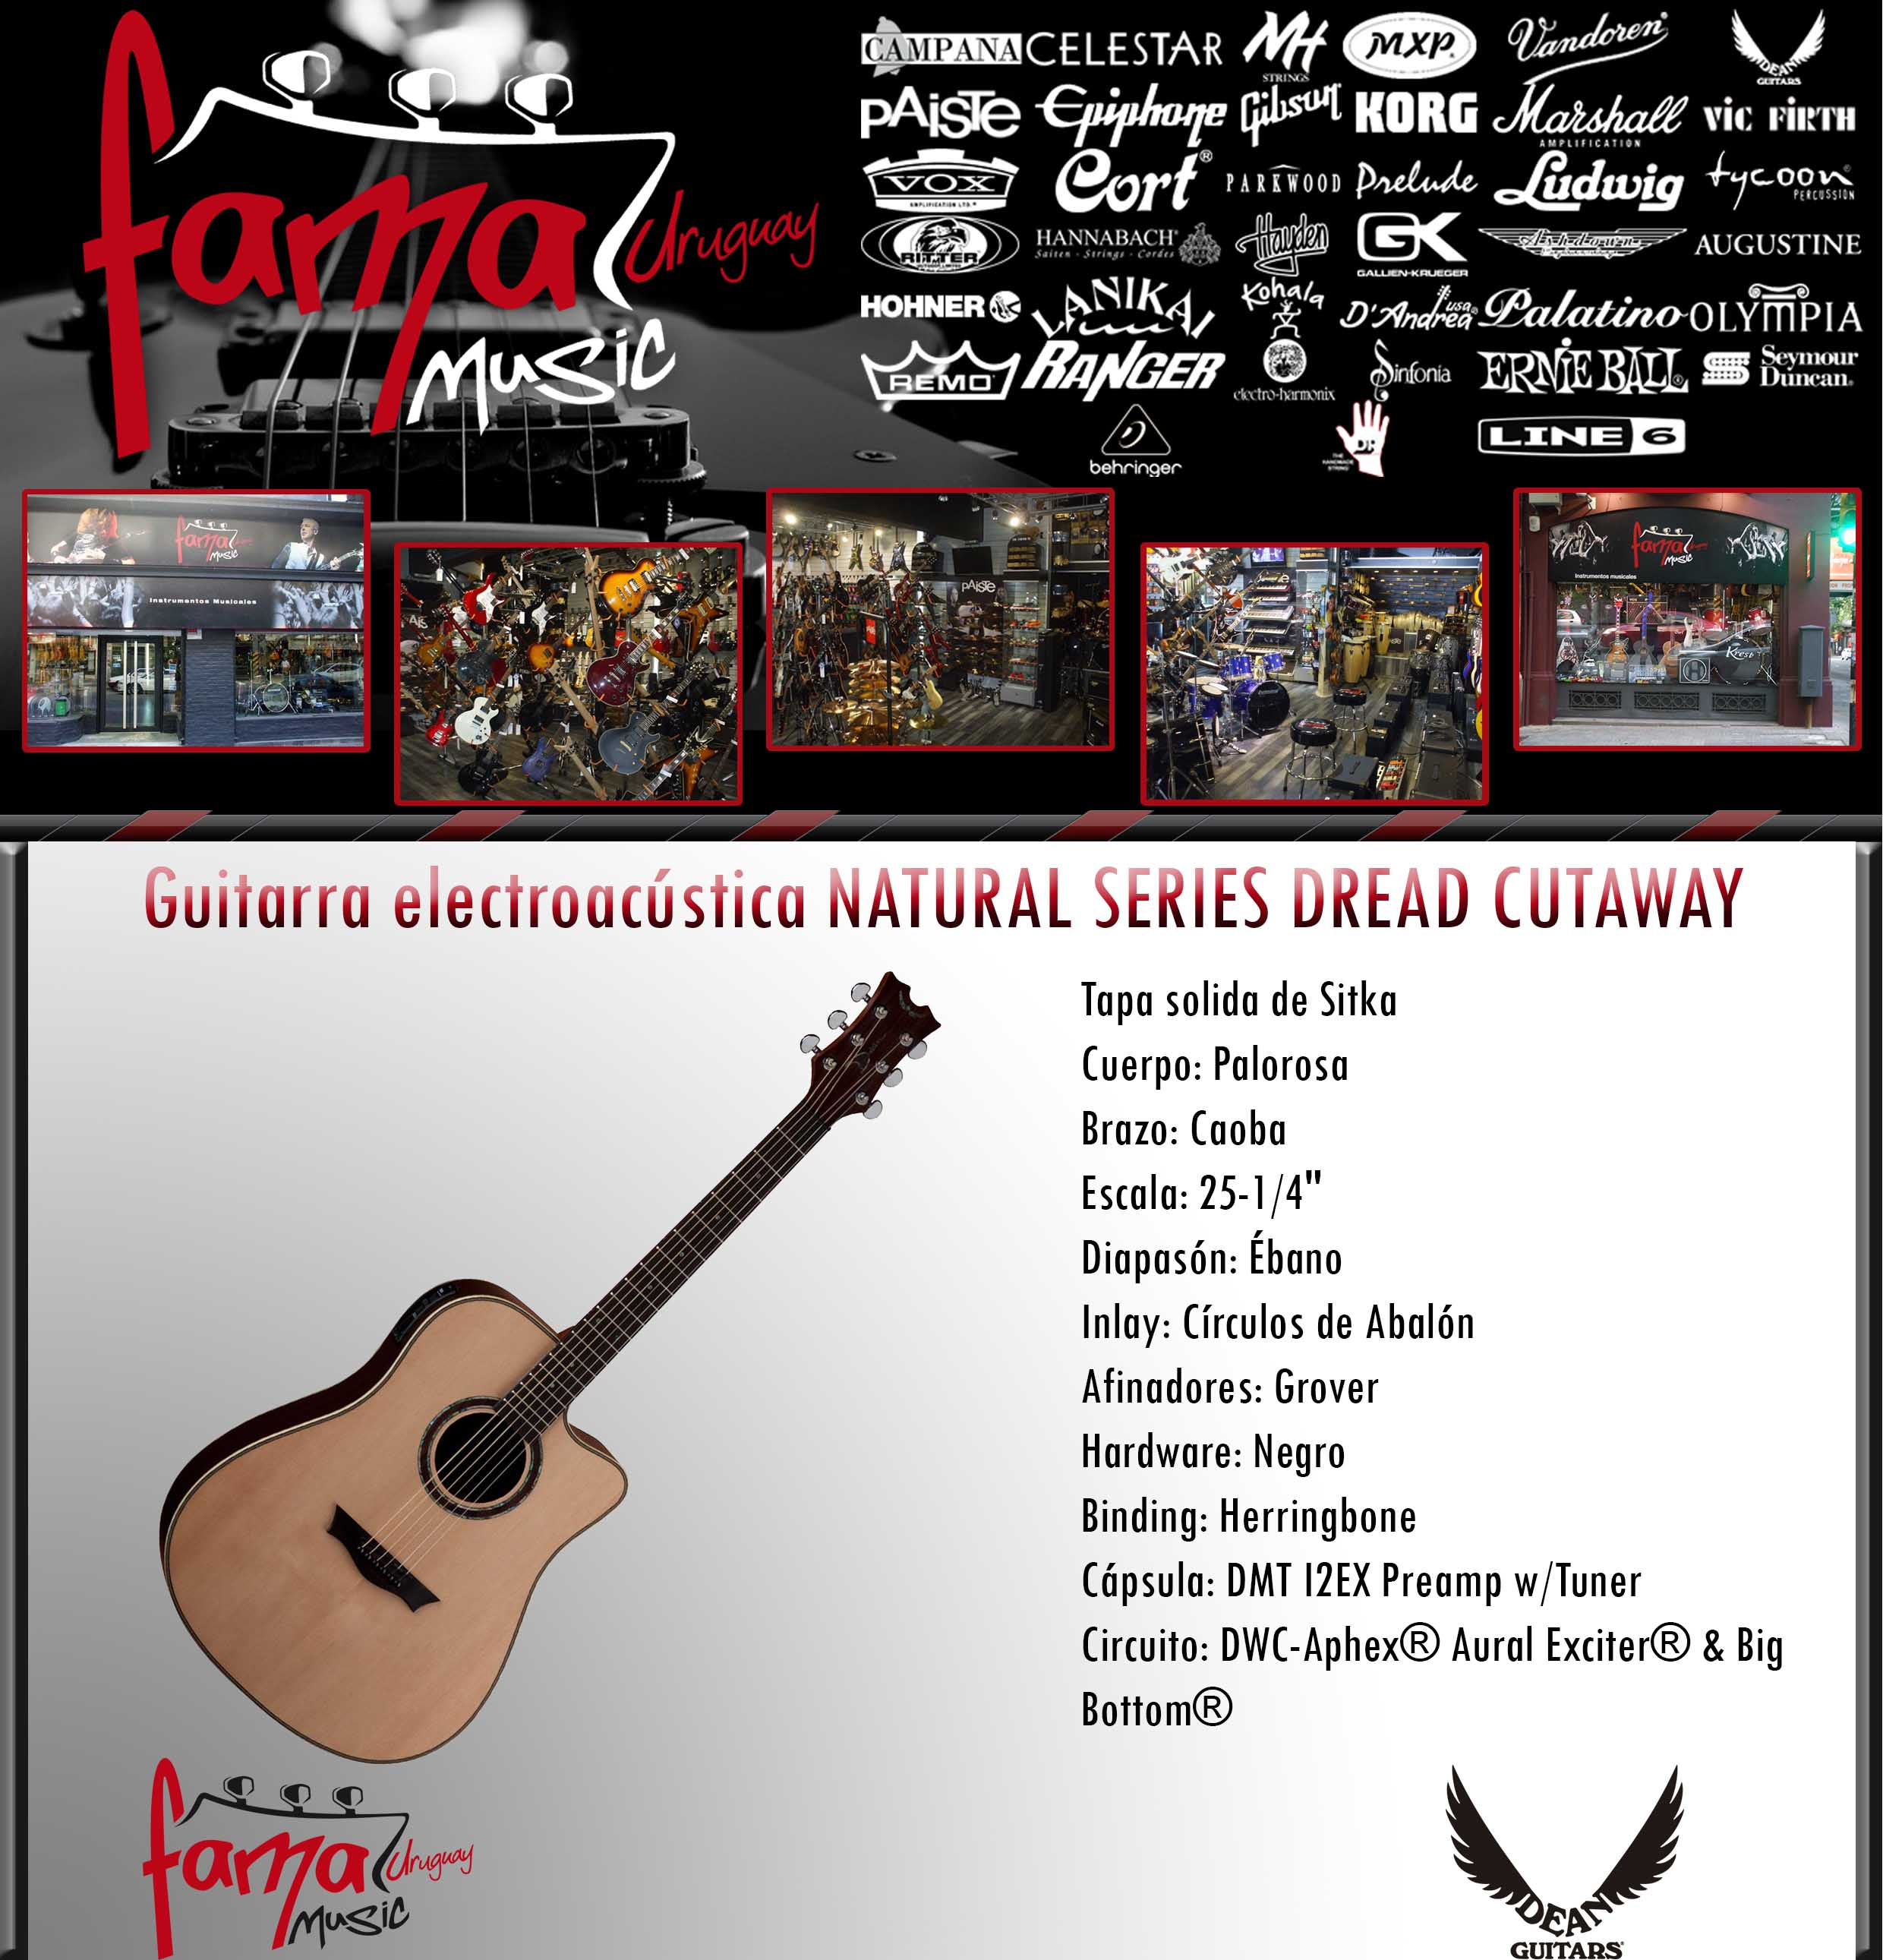 Guitarra electroacústica NATURAL SERIES DREAD CUTAWAY